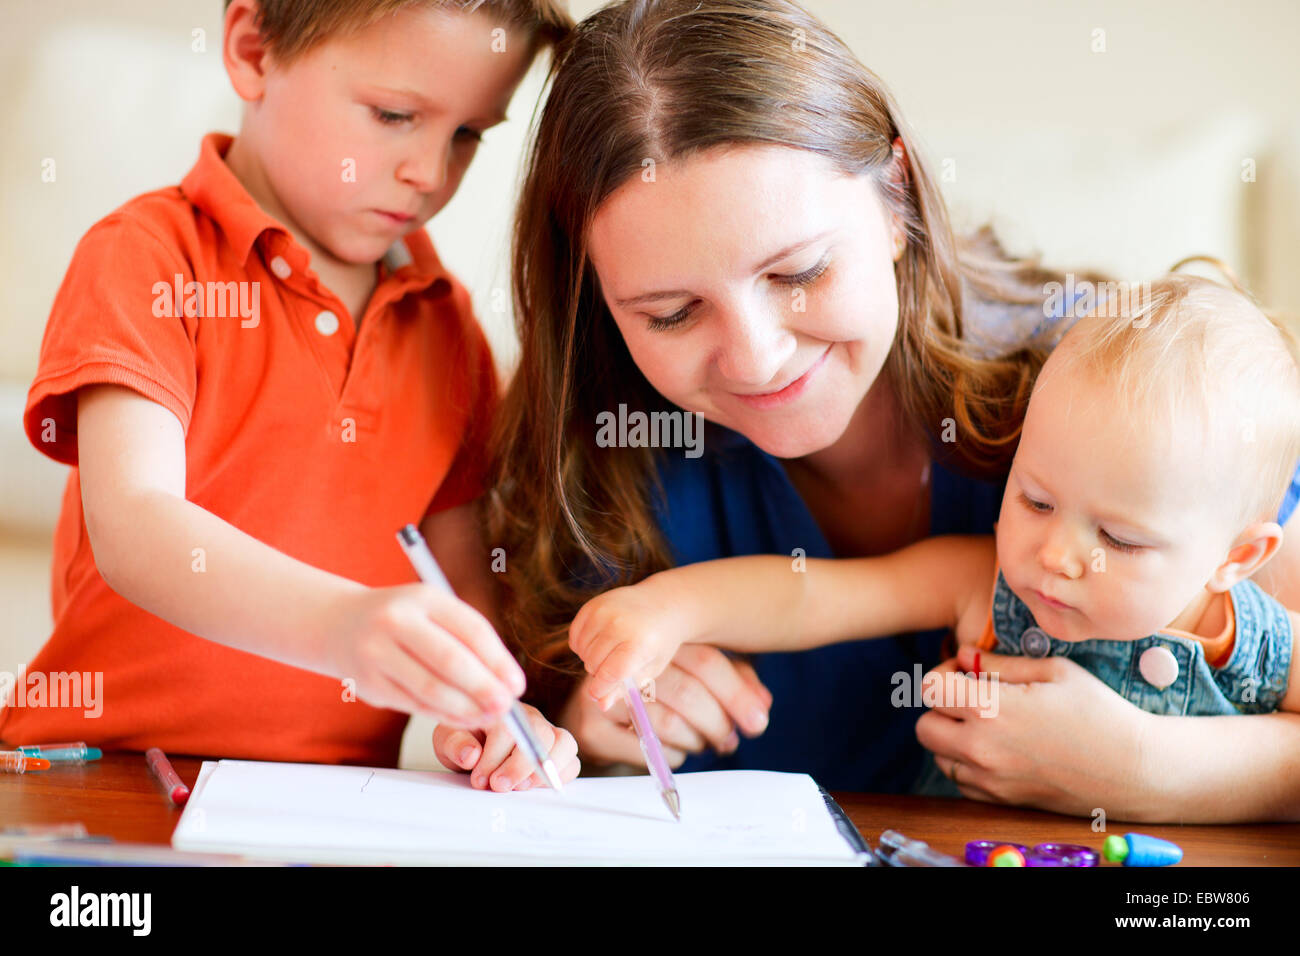 a young mother painting with her two children - Stock Image